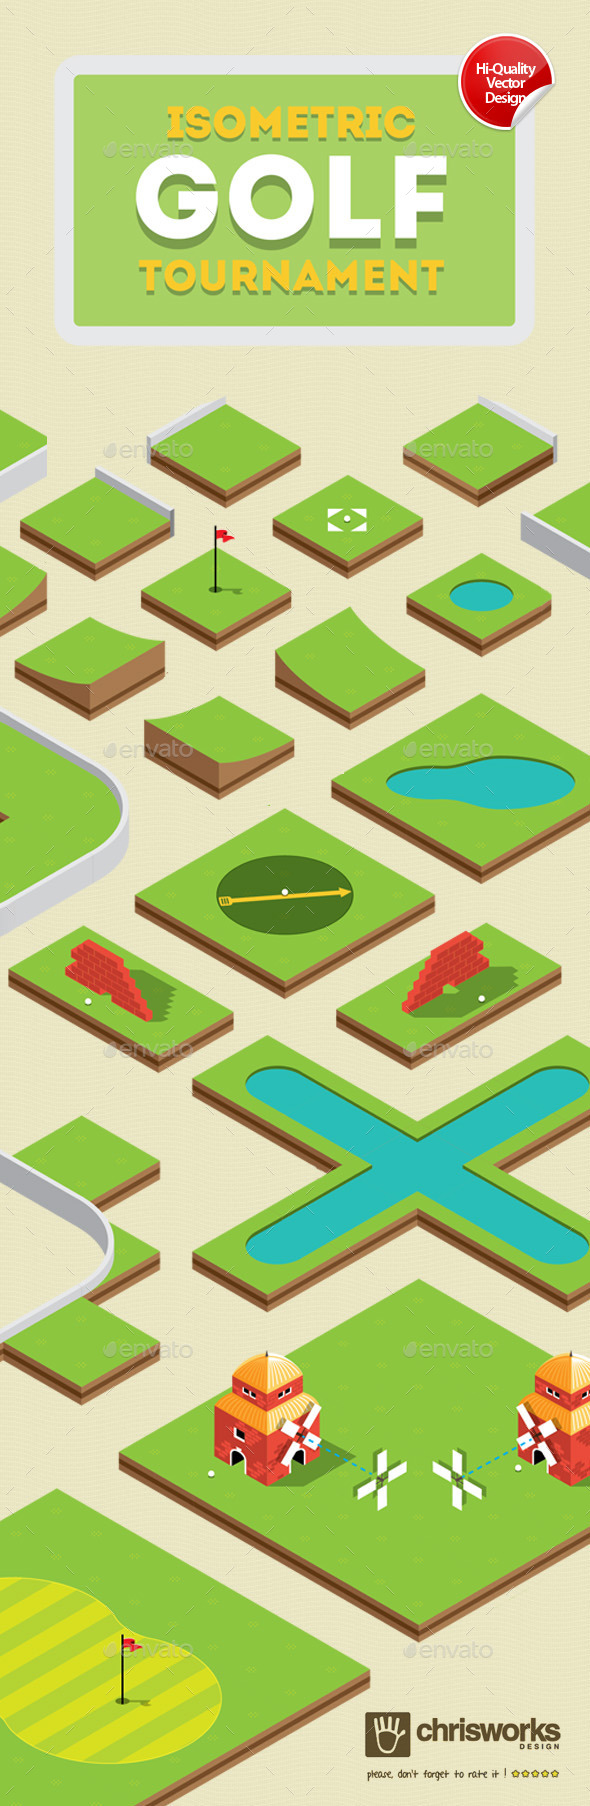 Isometric Golf Gamekit